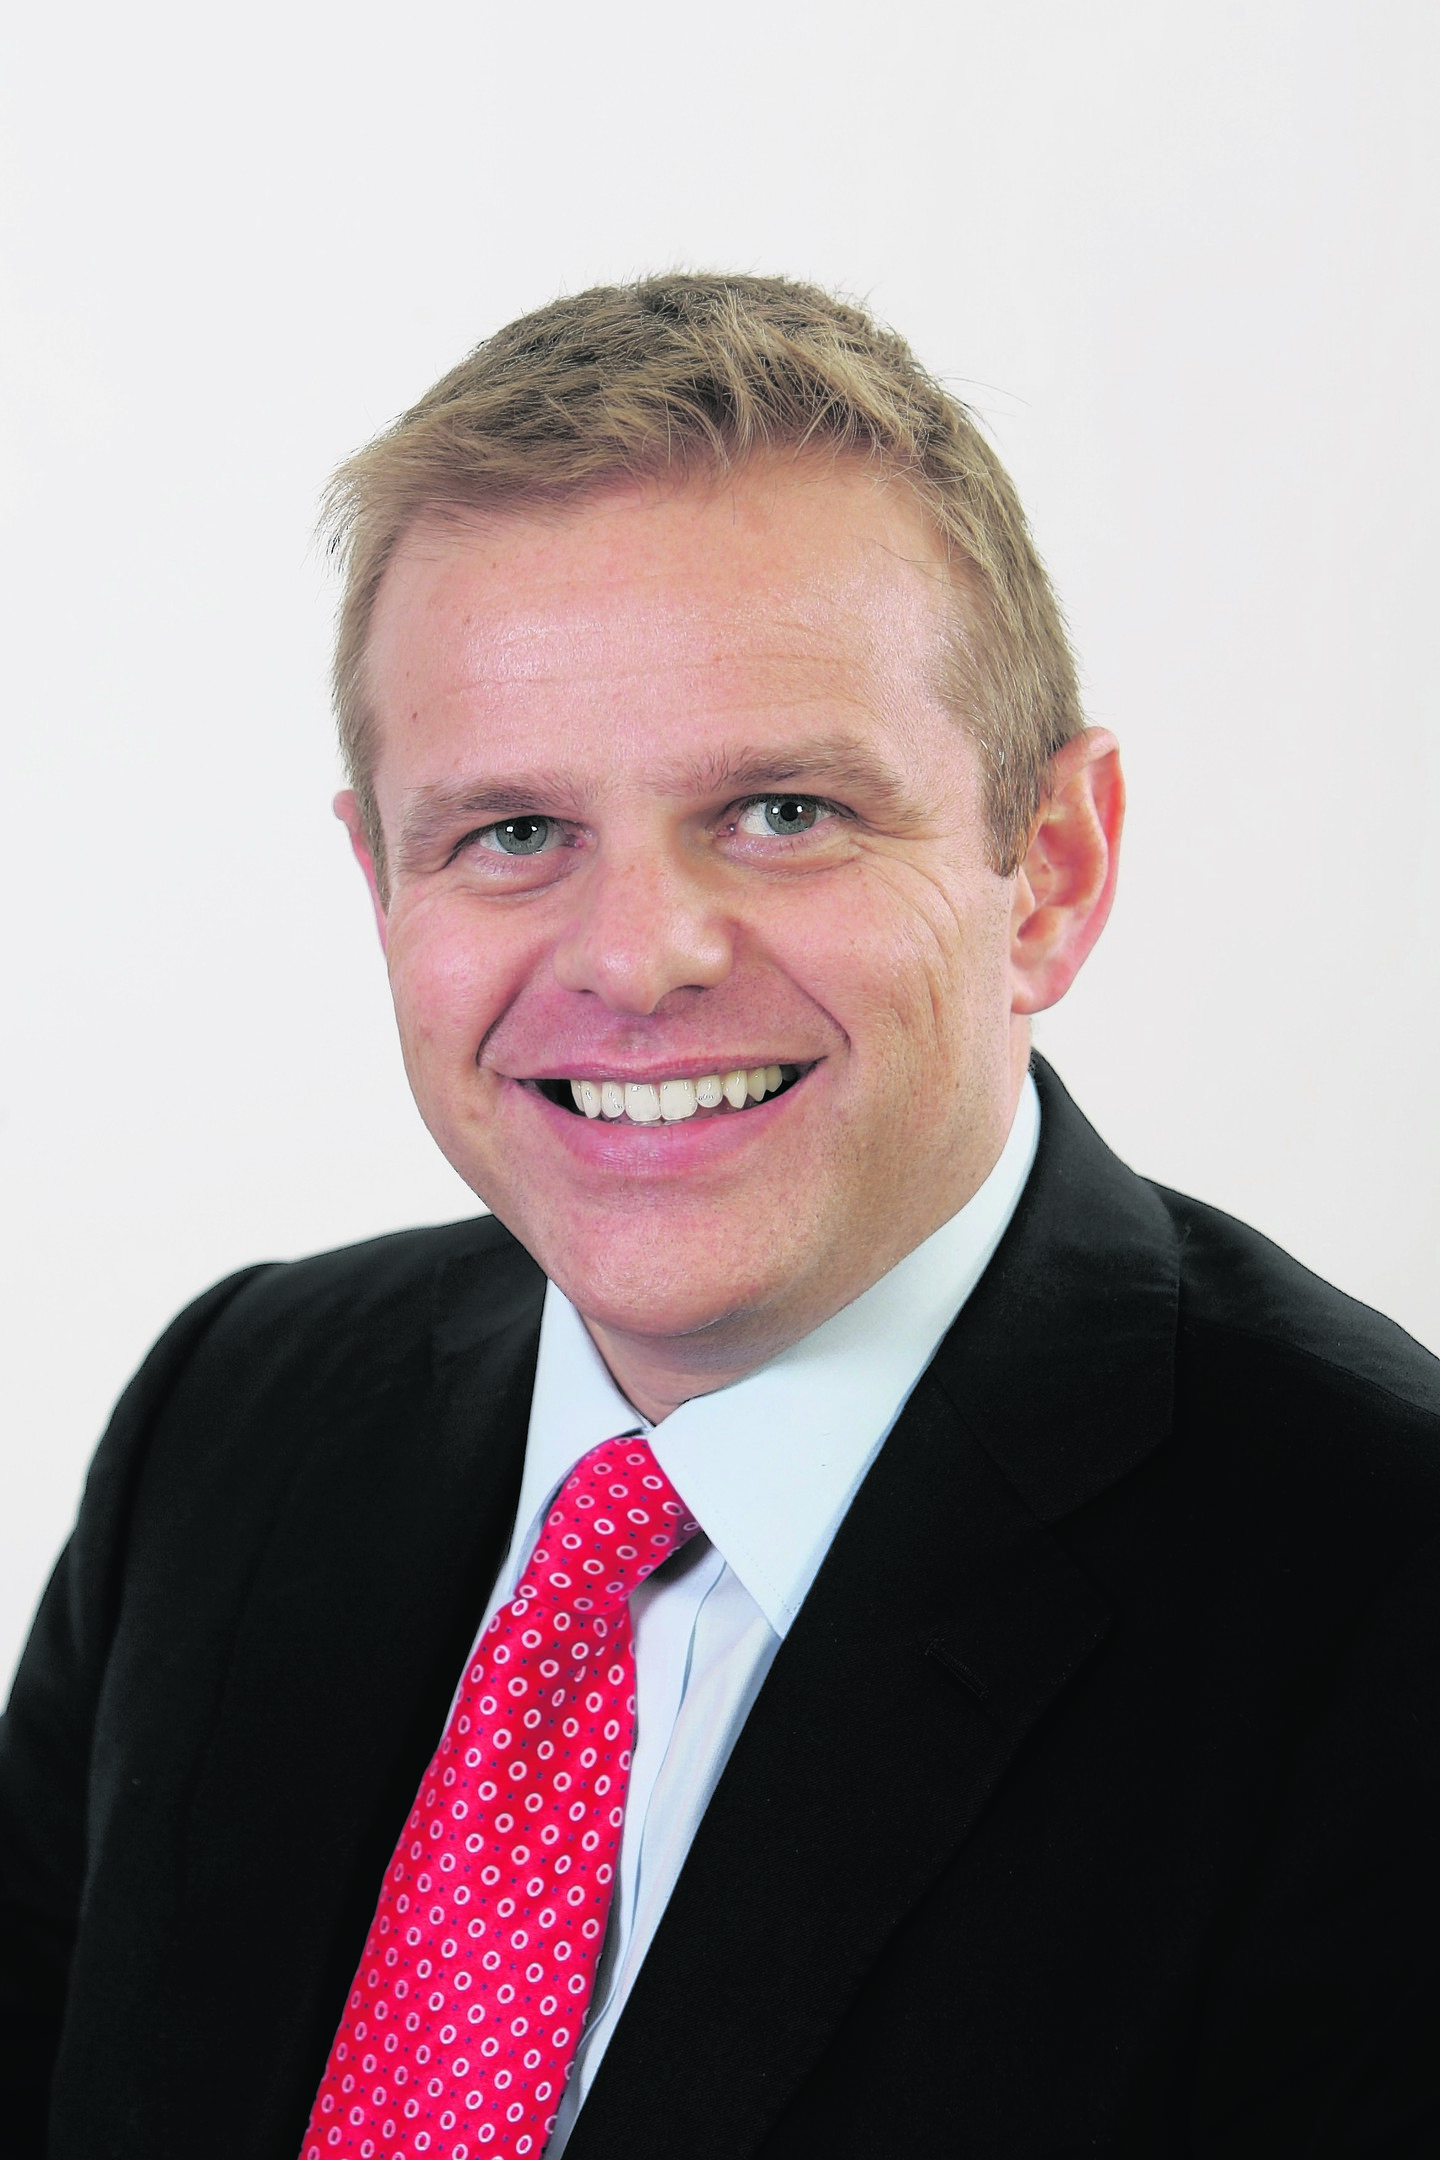 David Glen, head of tax at PricewaterhouseCoopers